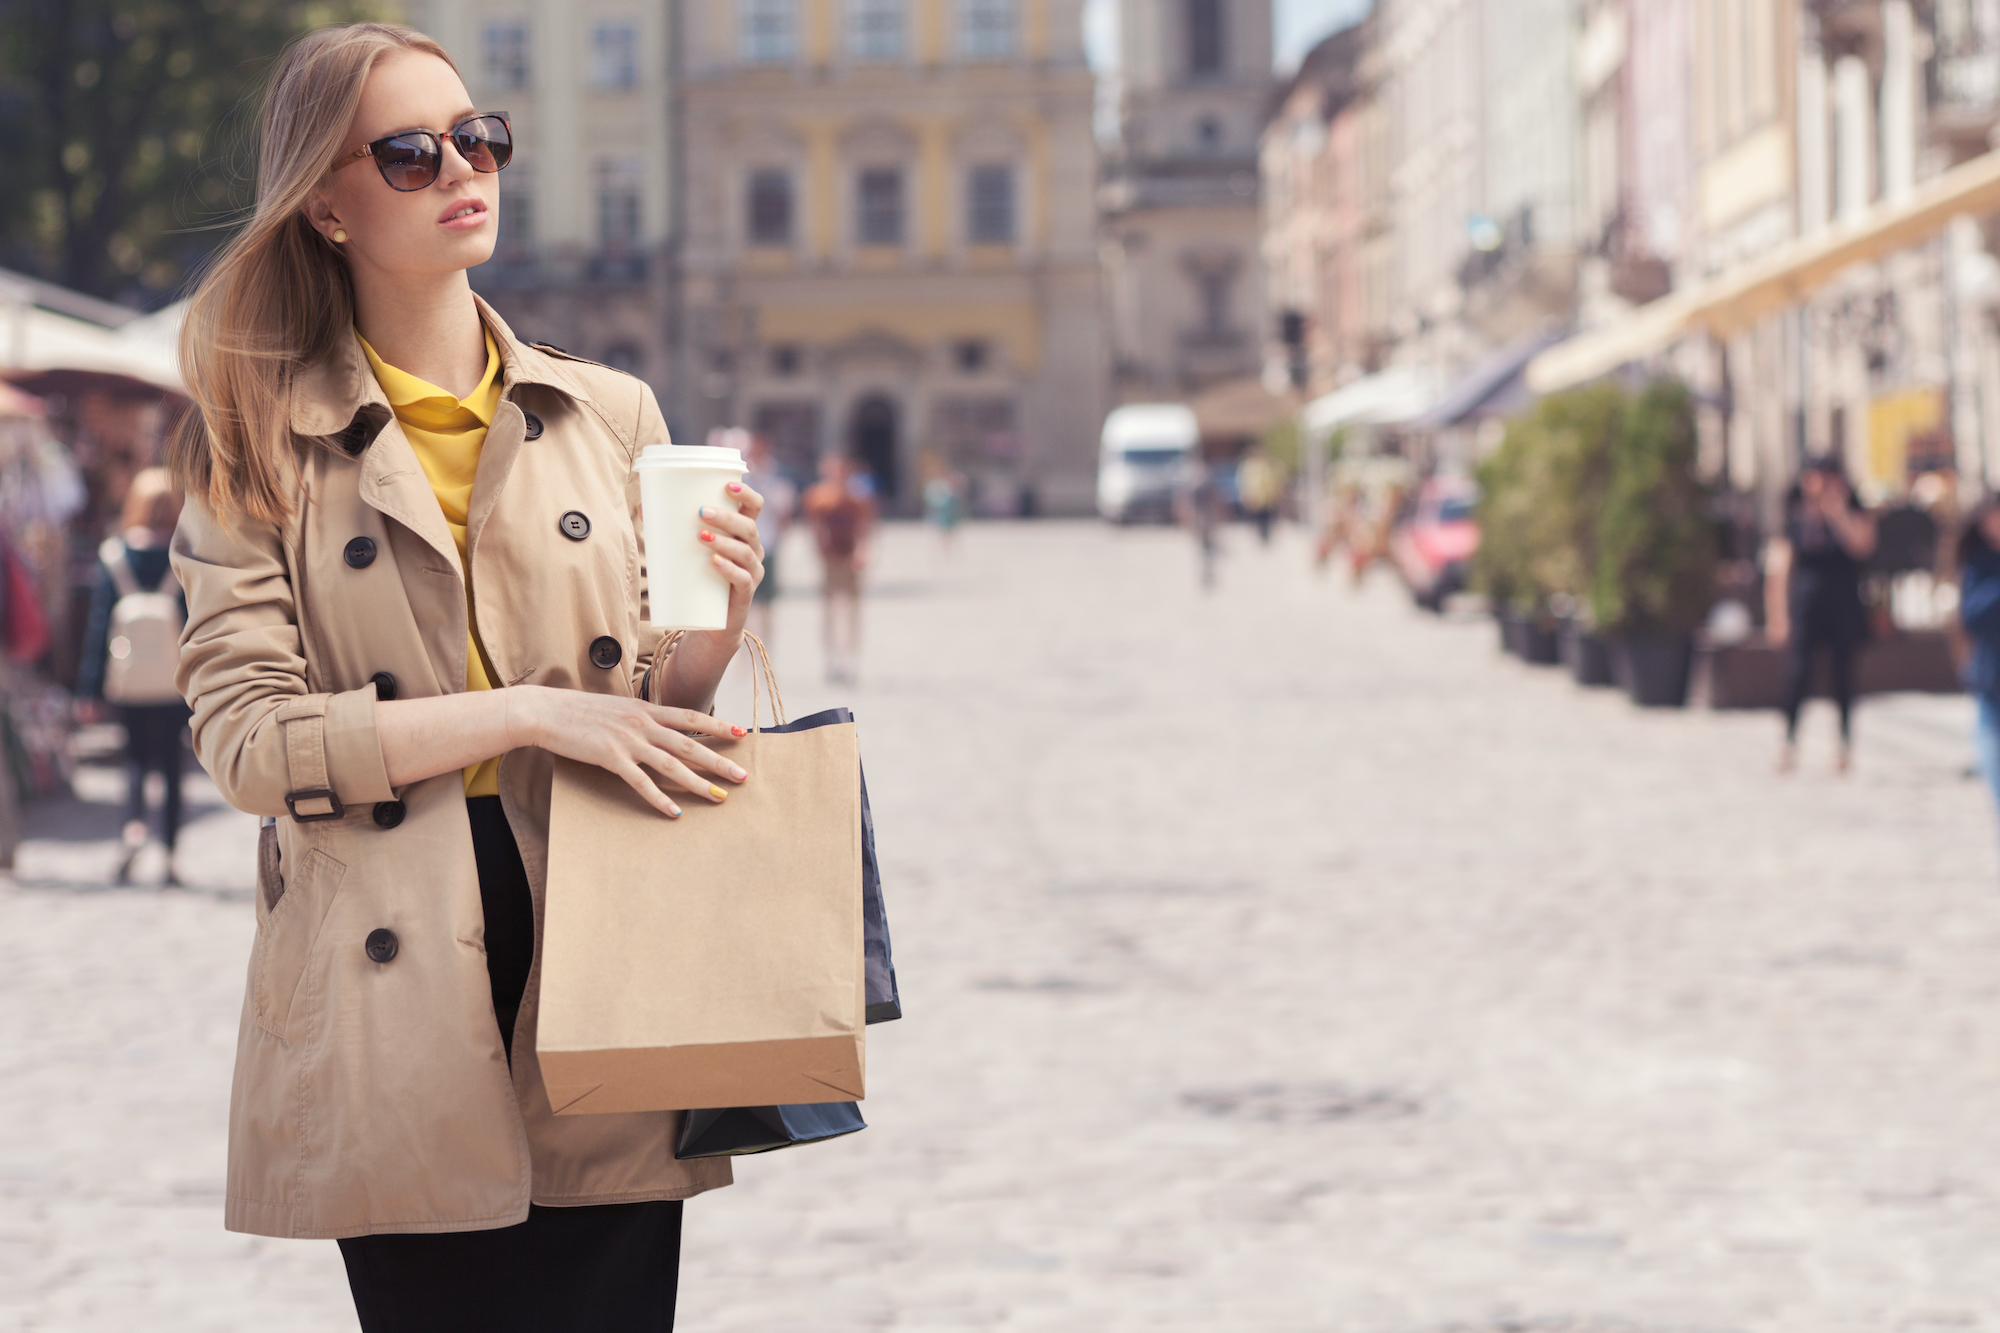 Young fashionable woman taking a coffee break after shopping, walking with a coffee-to-go in her hands against urban city background.